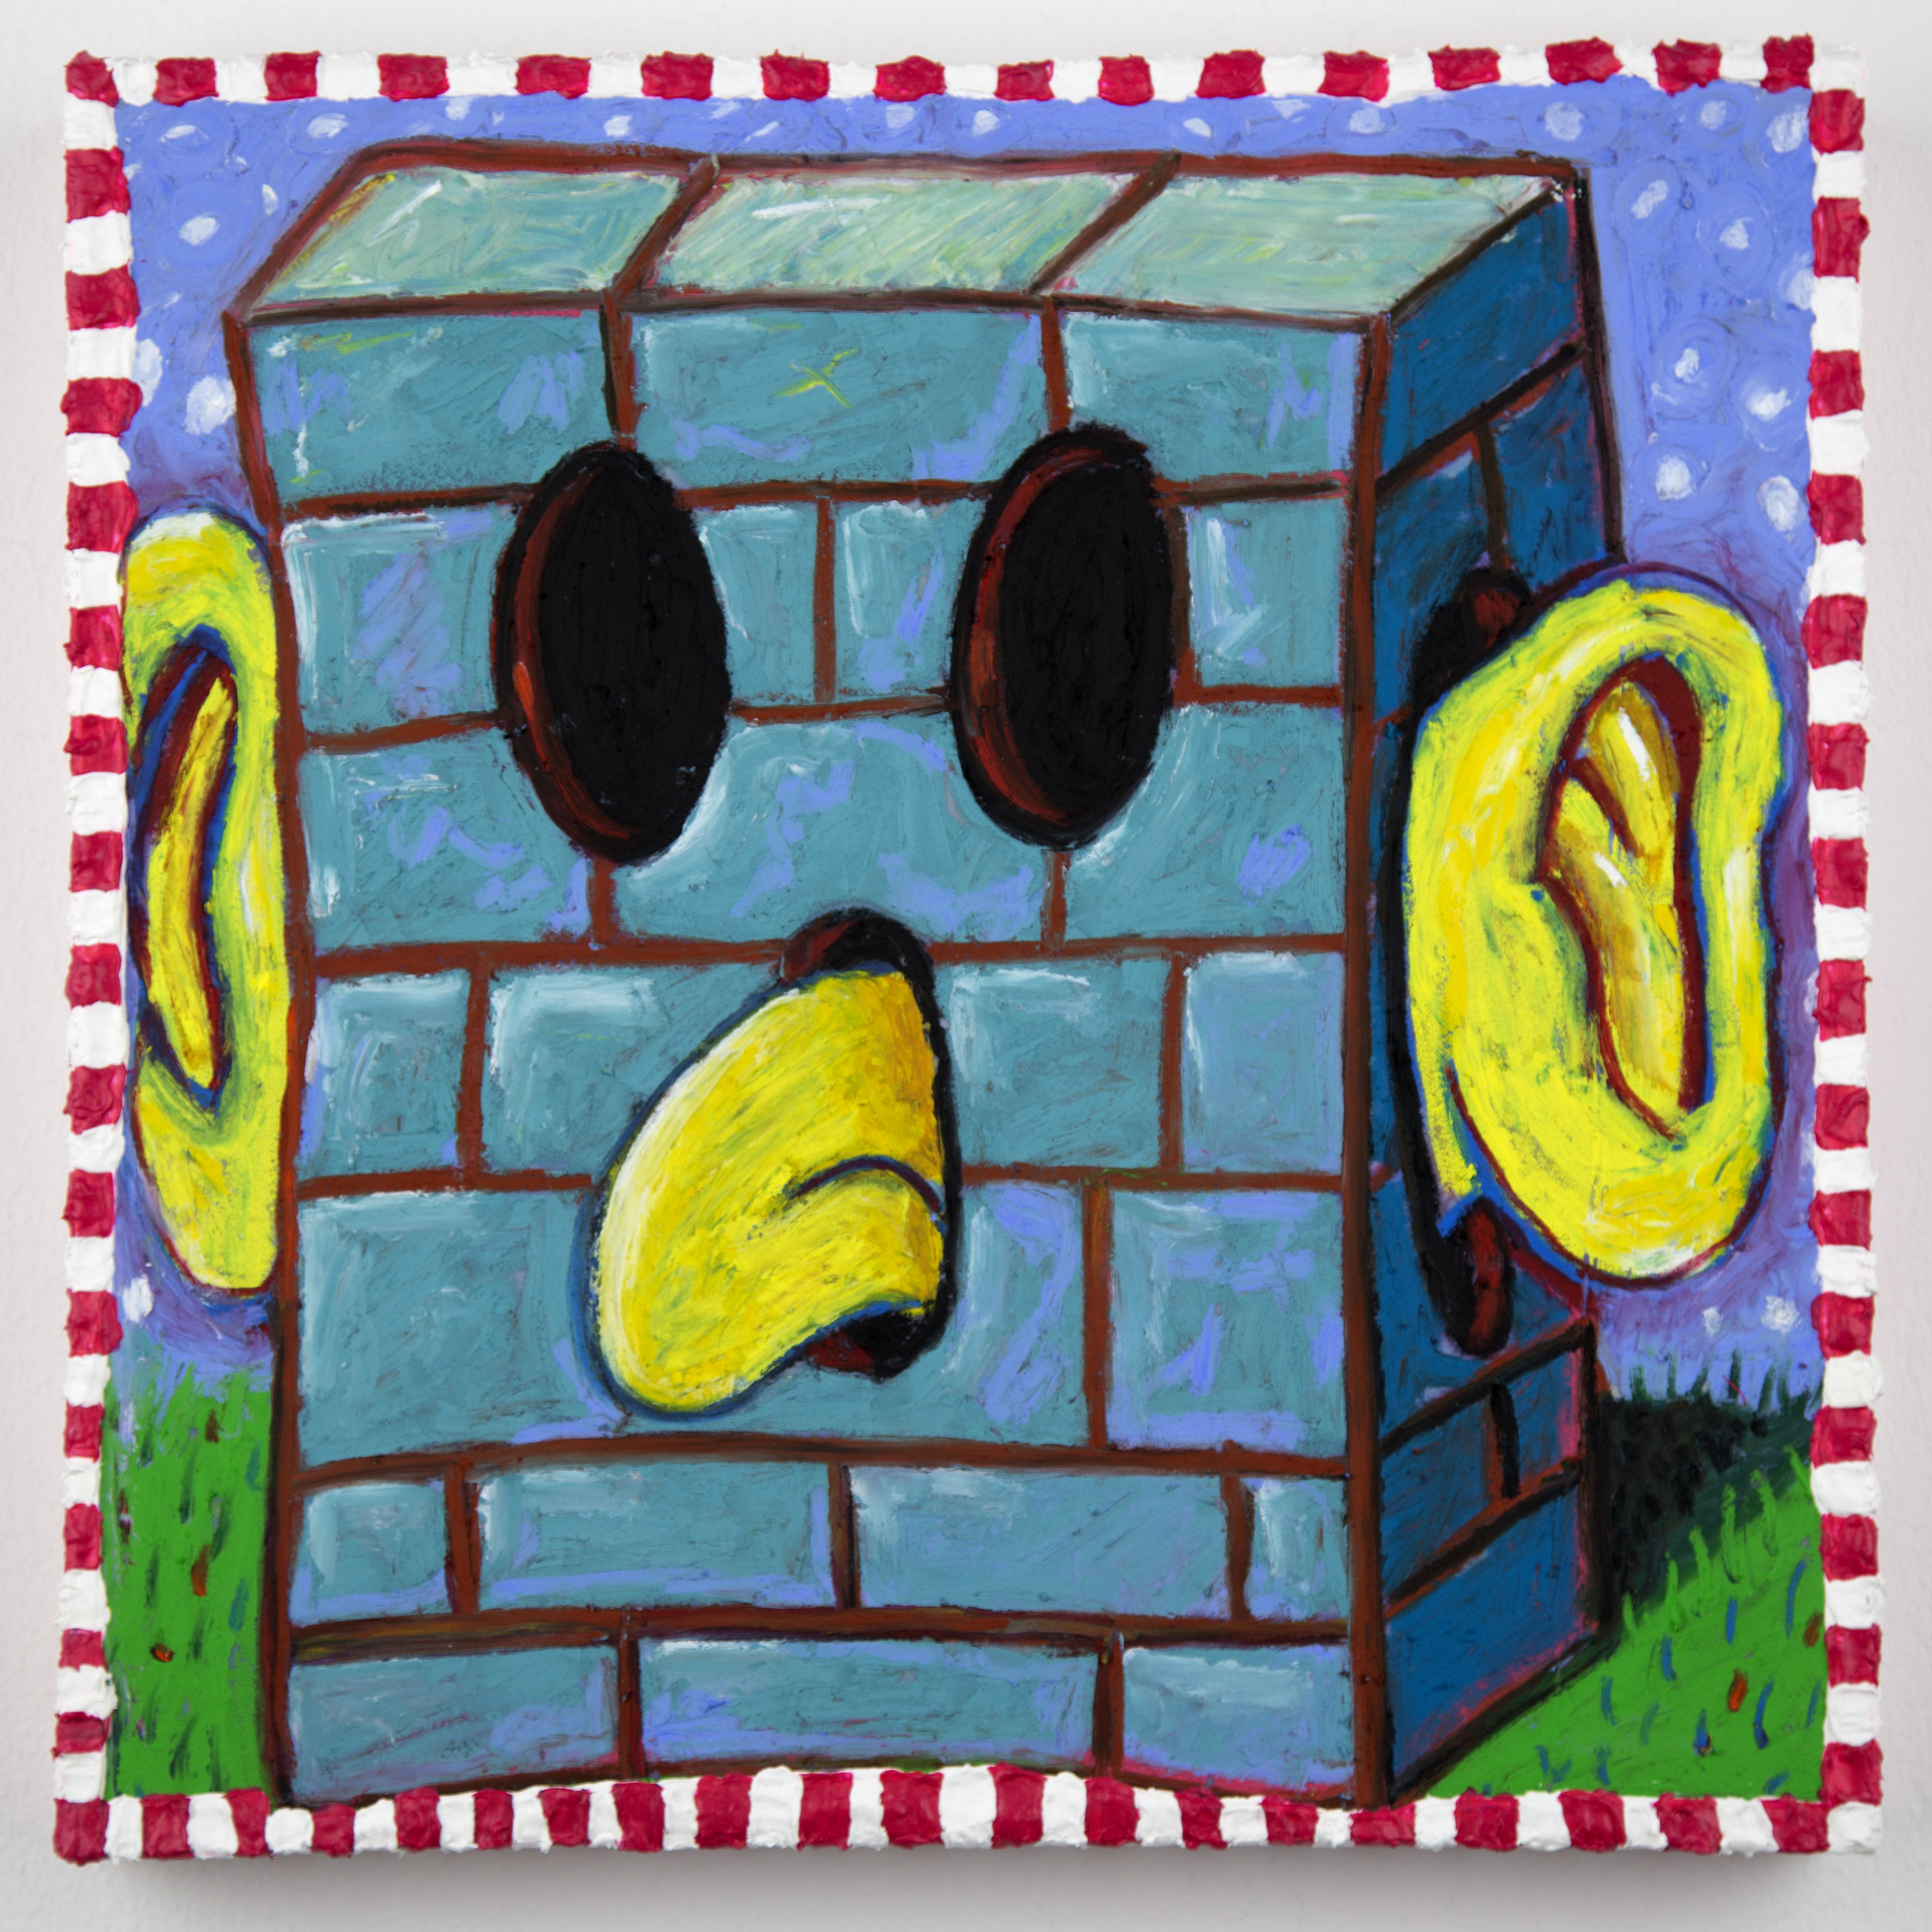 The Wall Has Eyes, Ears, and a Nose